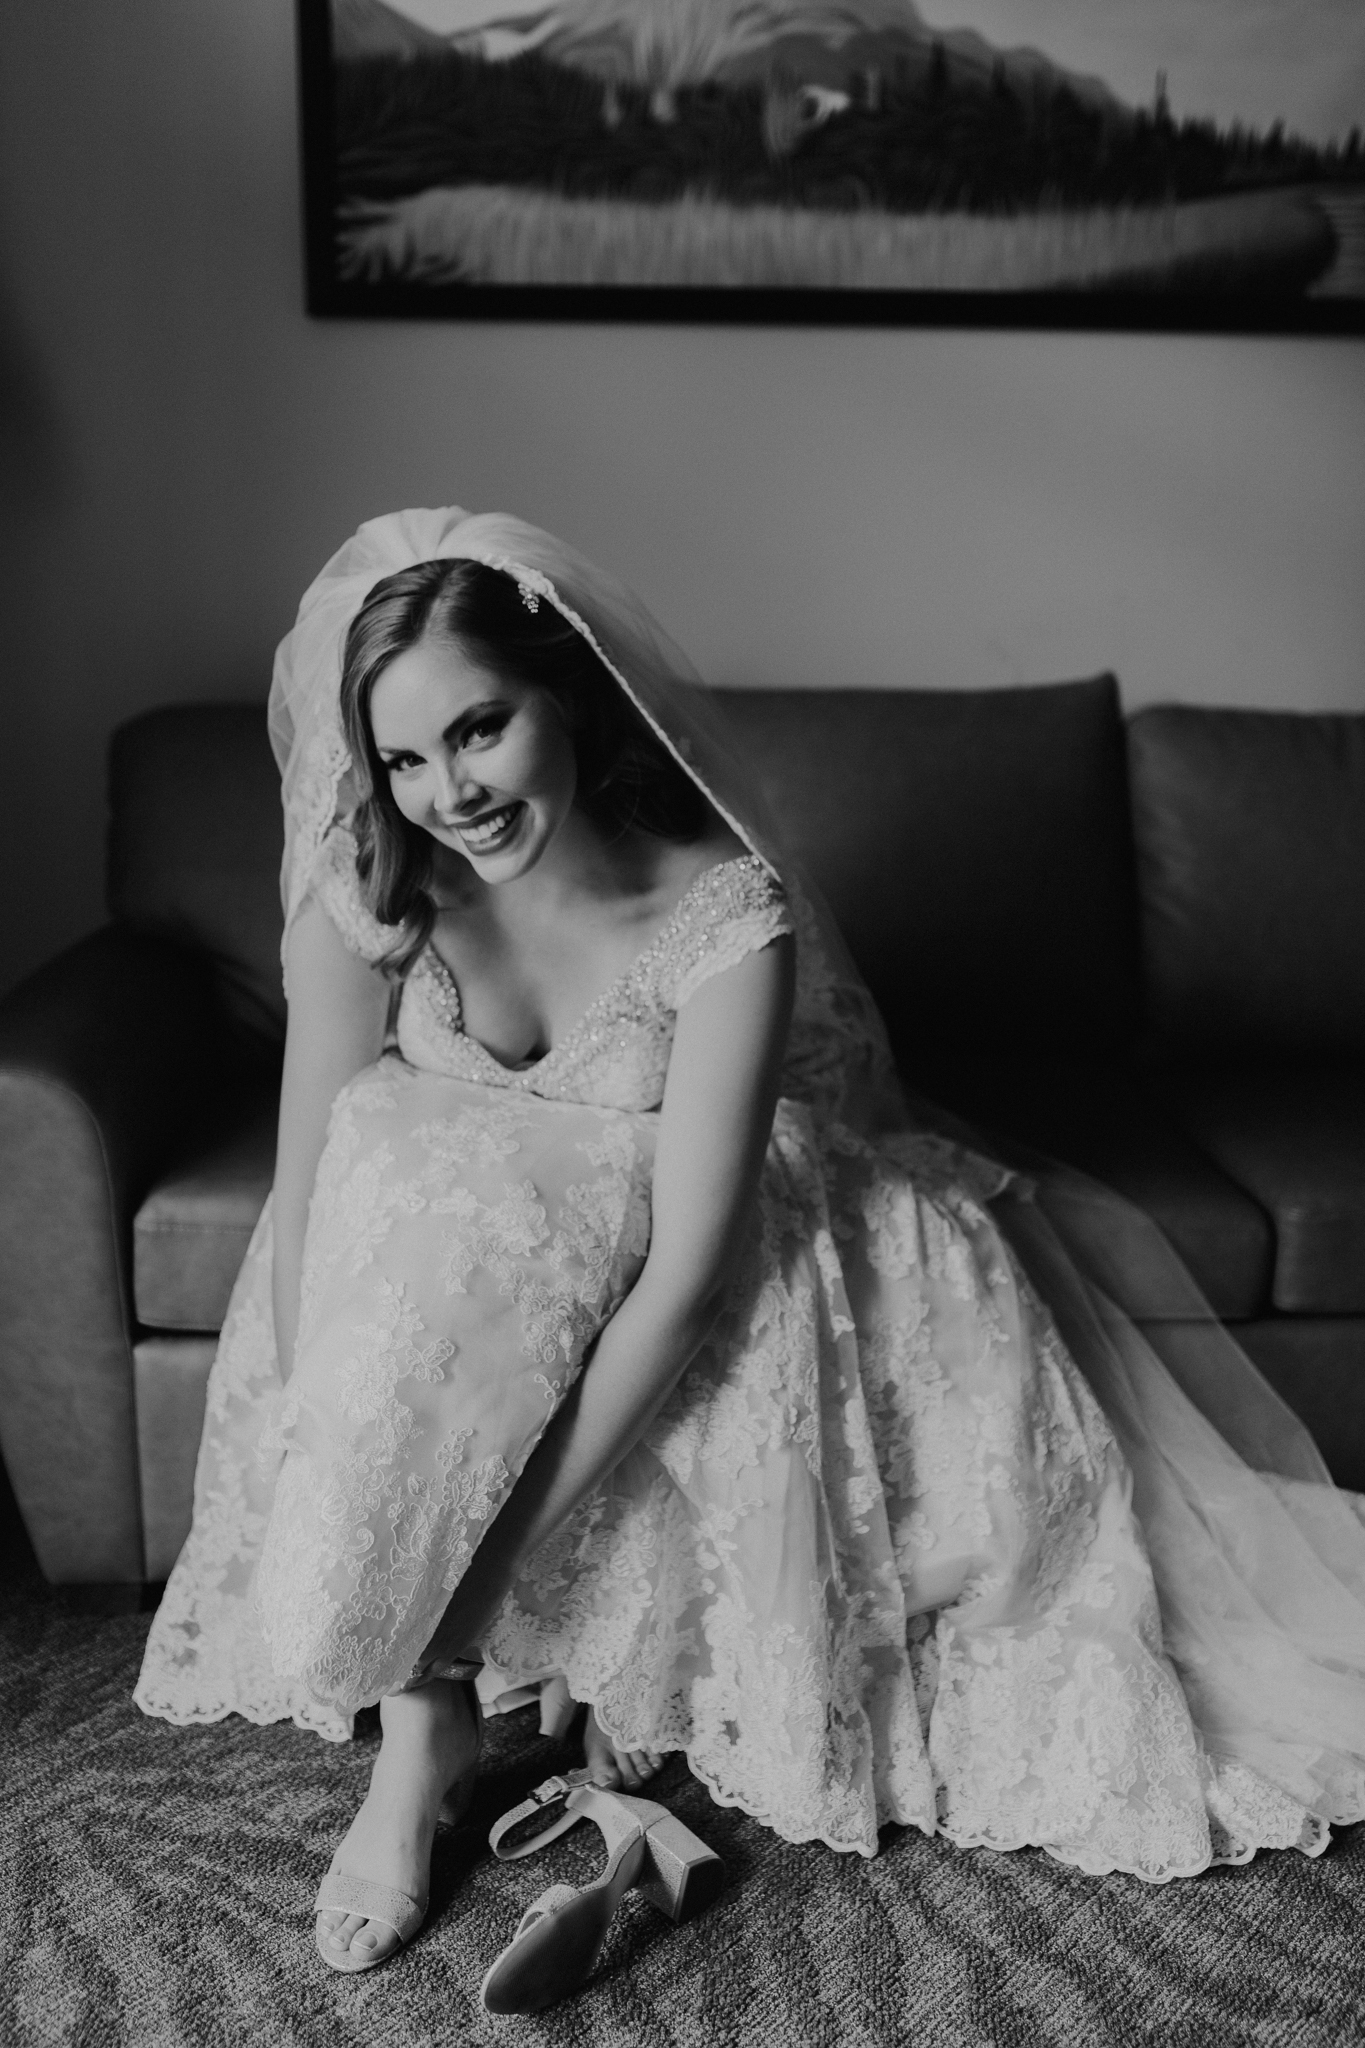 Bride sitting on couch putting on shoes at destination wedding in Canmore Alberta